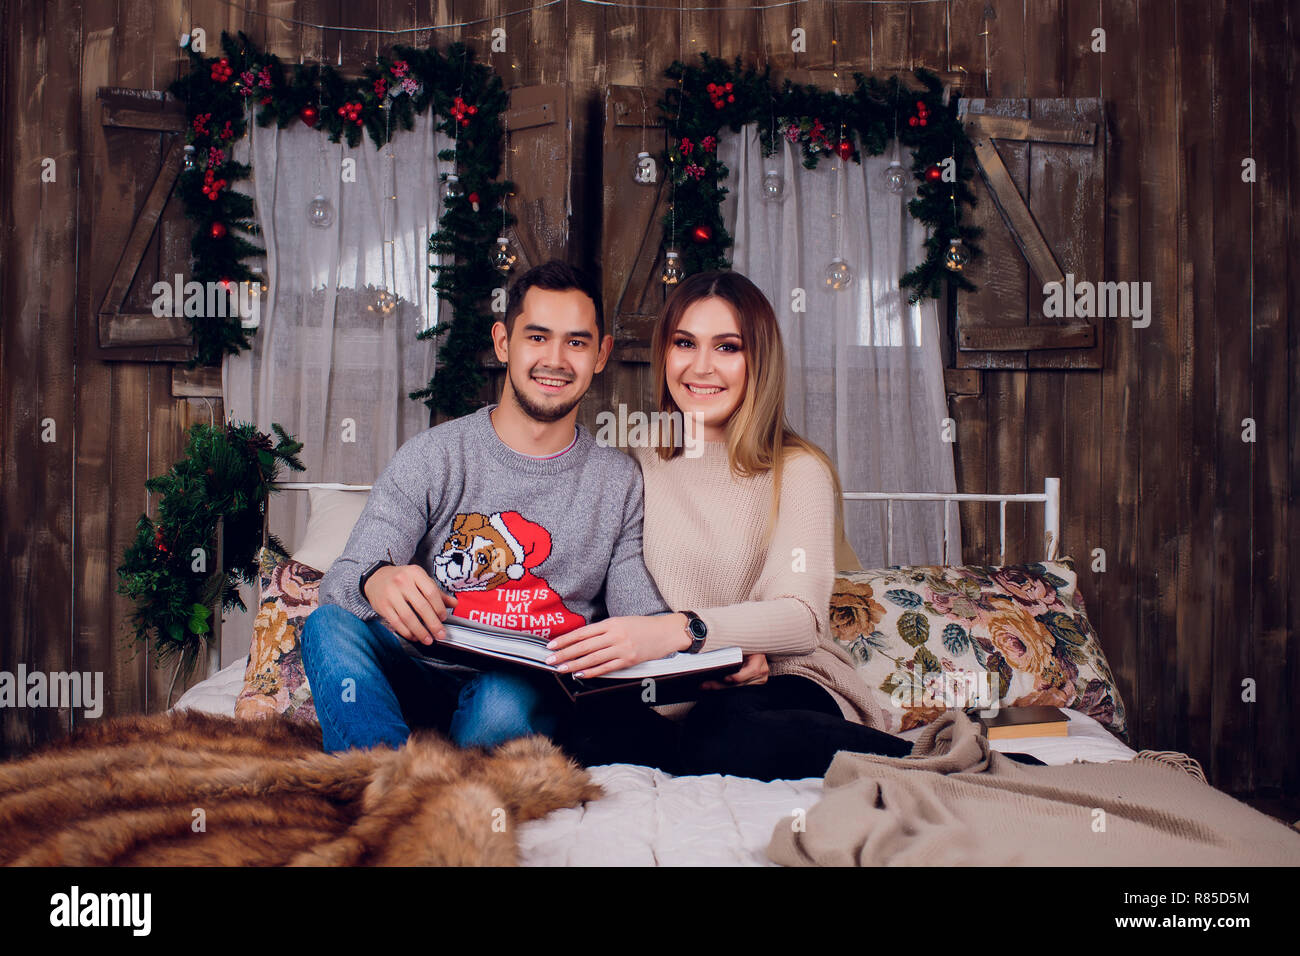 Spending nice time at home. Beautiful young loving couple bonding to each other and smiling while woman holding a book. - Stock Image